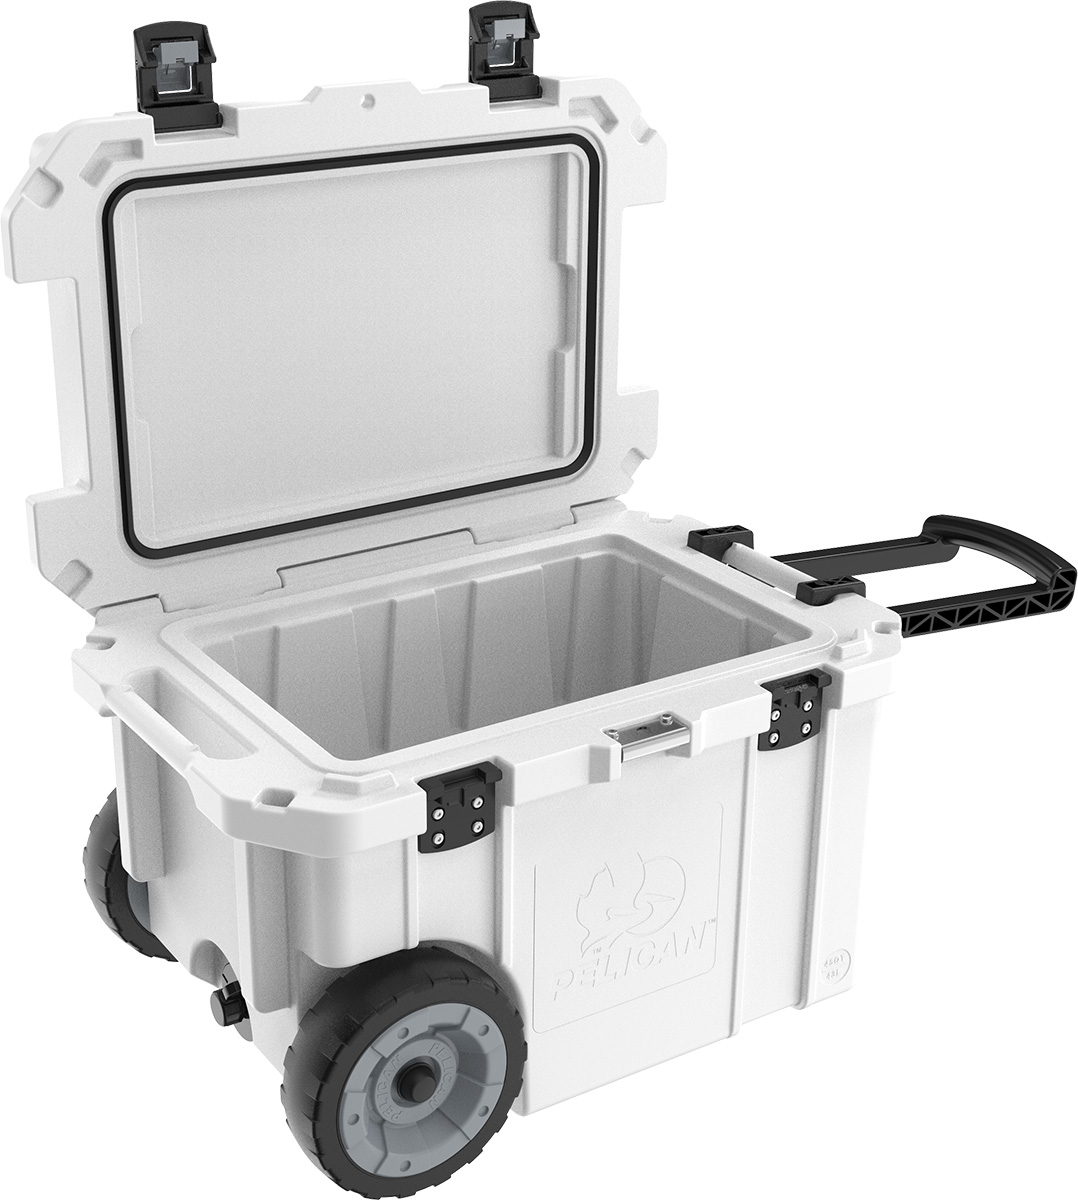 pelican-hunting-coolers-45qw-outdoor-cooler.jpg